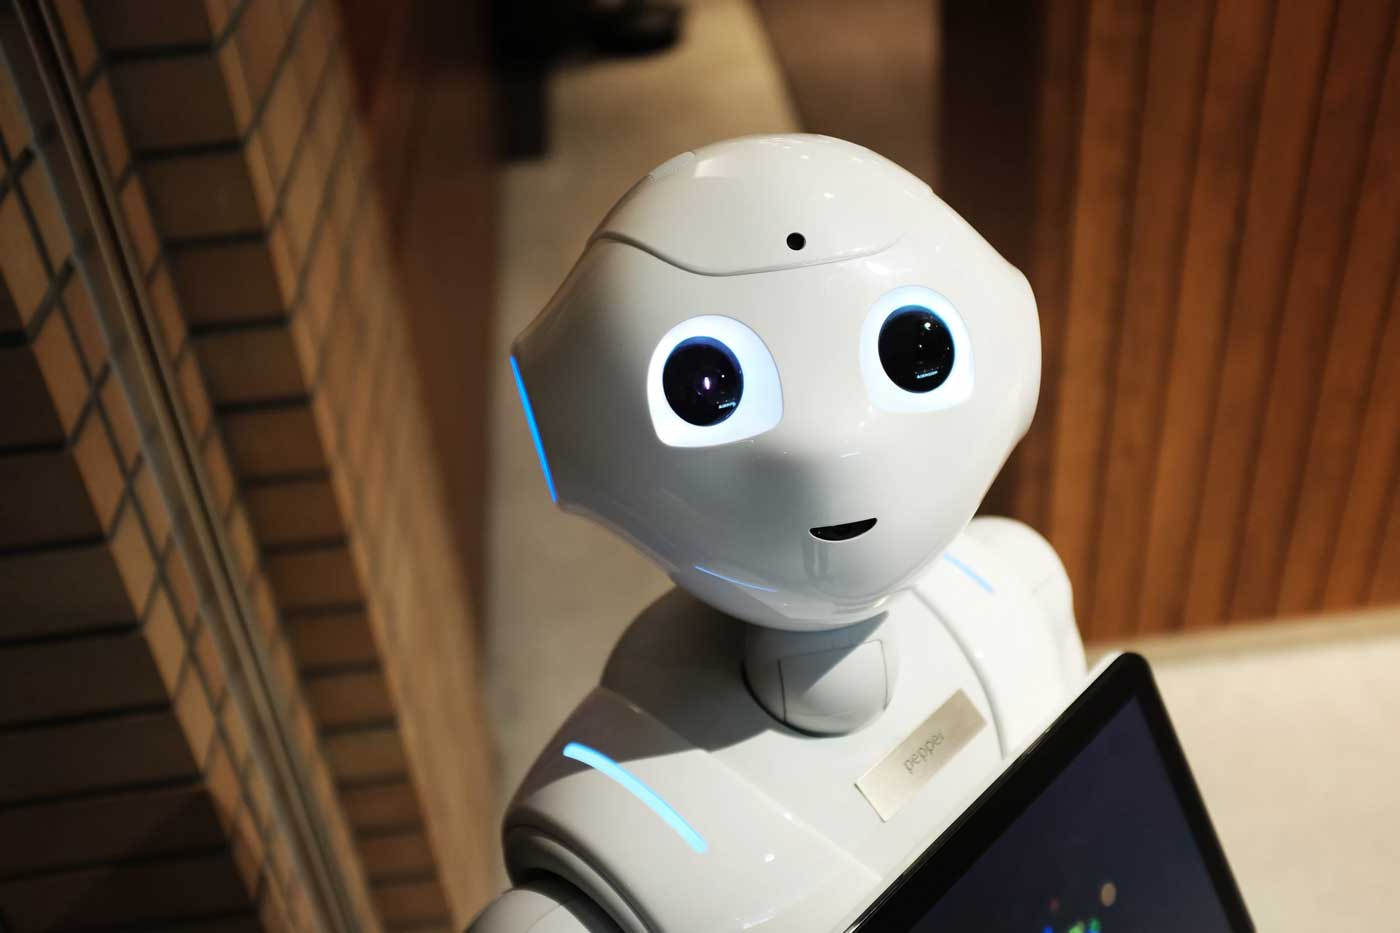 Why Robo-Advisors Will Not Impact Financial Planners